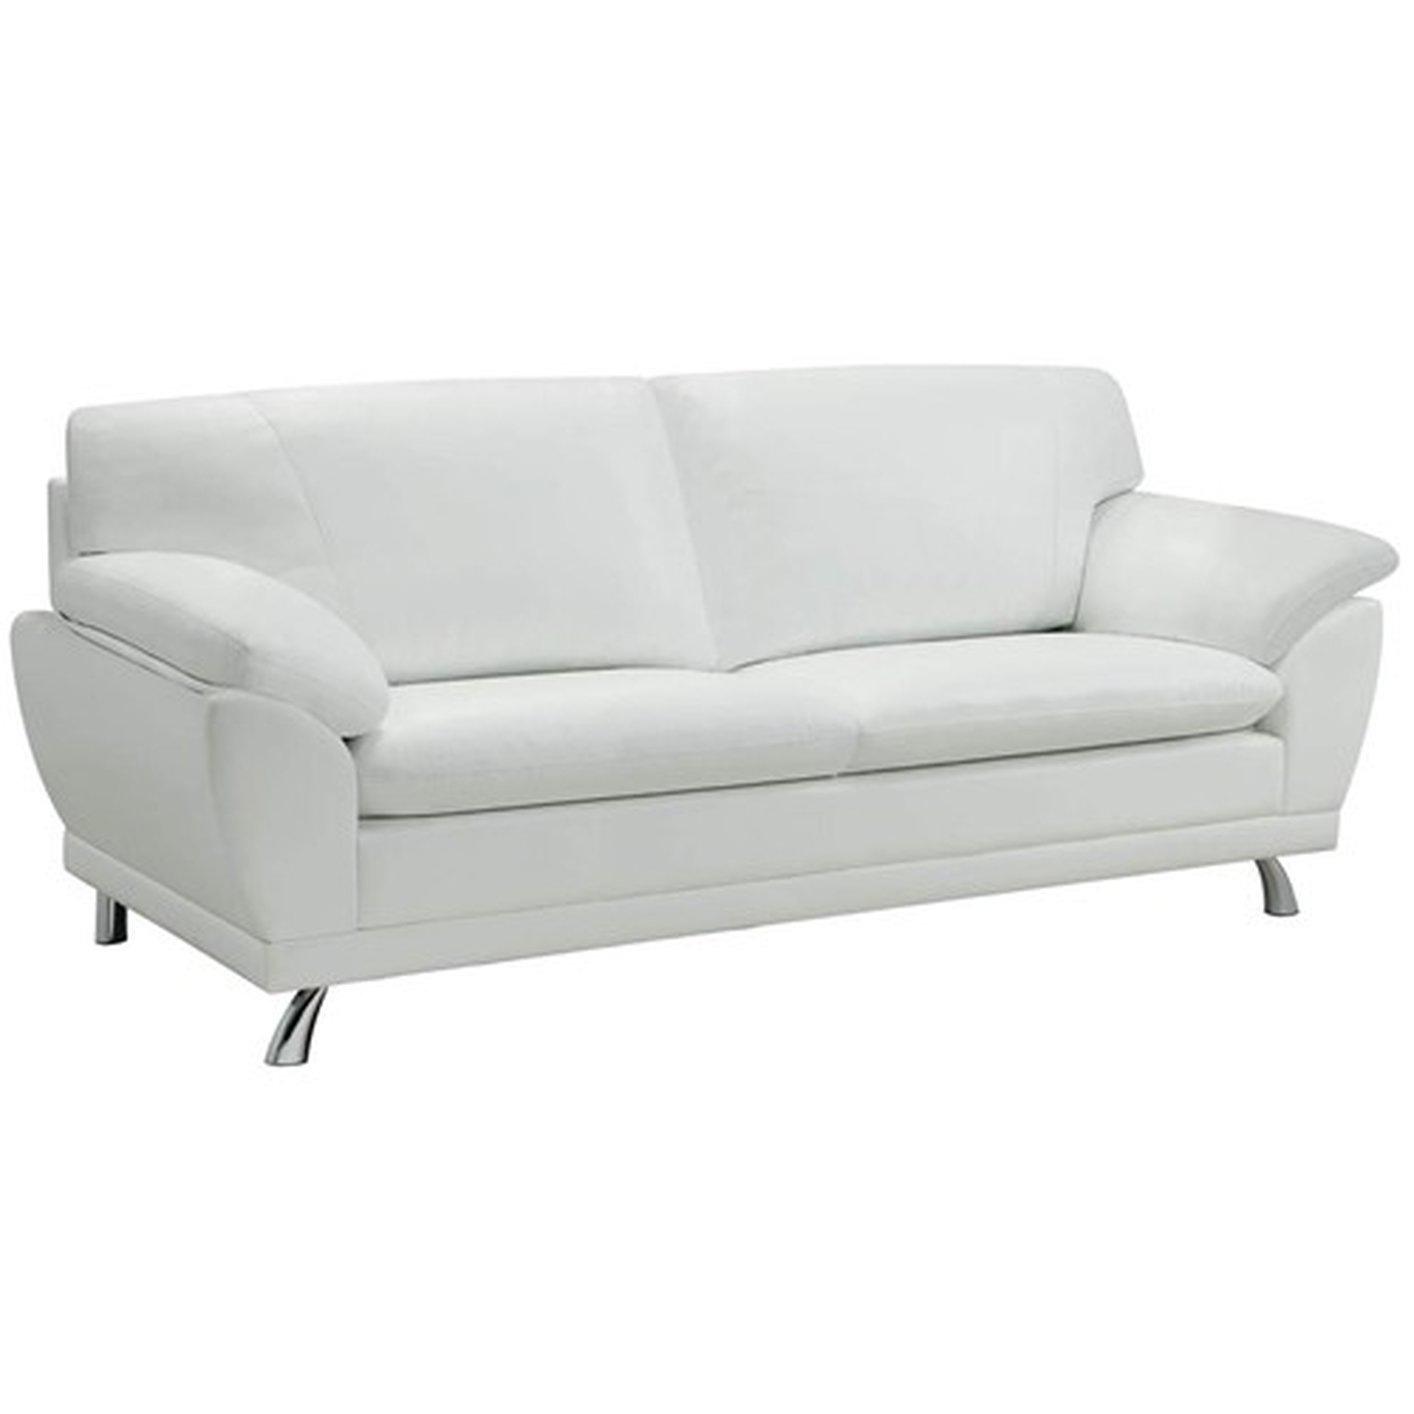 robyn white leather sofa a sofa furniture outlet